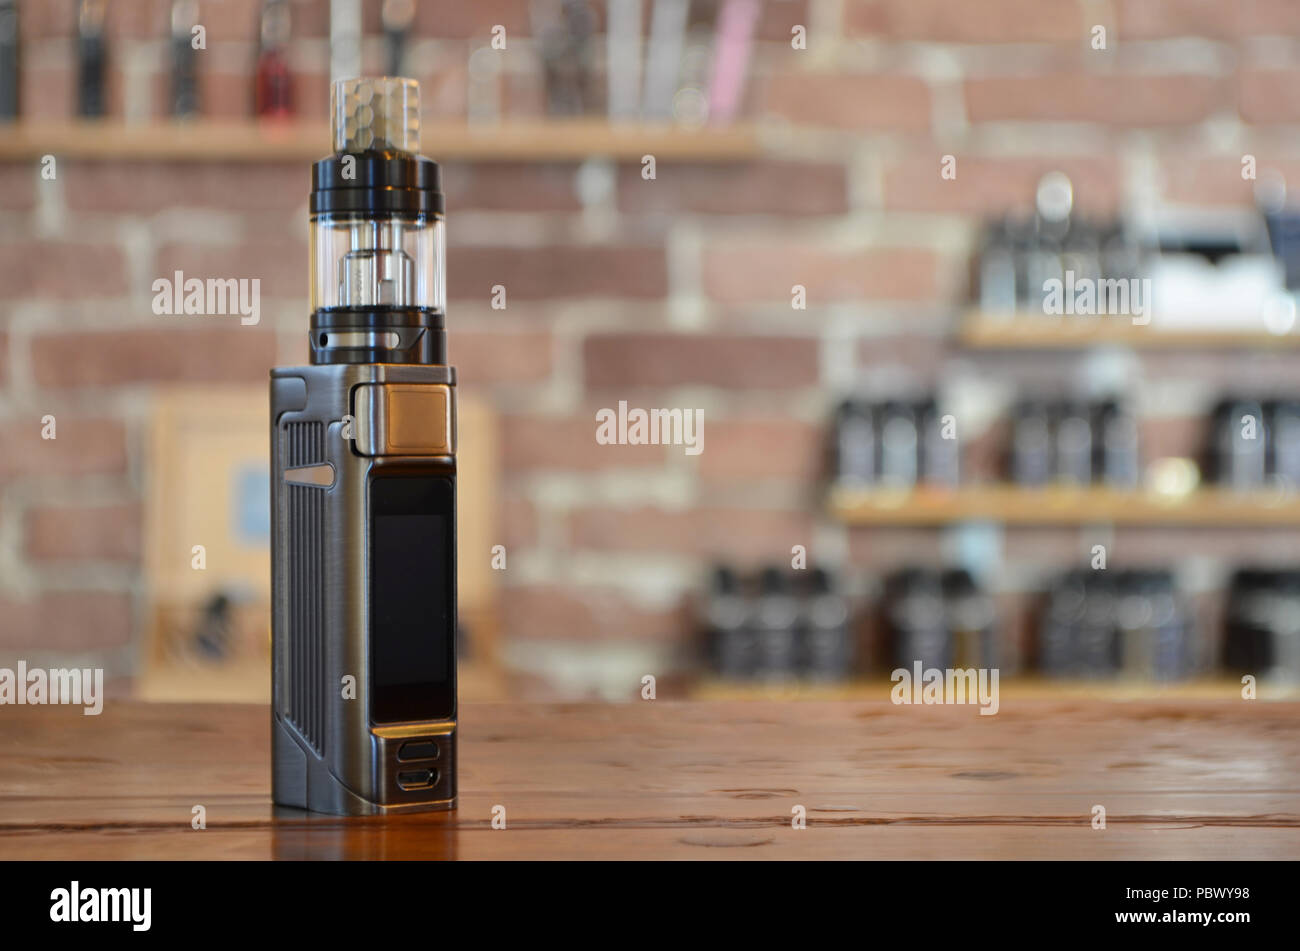 Electronic cigarette with ejuice bottle on a background of vape shop. E-cigarette for vaping. Popular vape devices - Stock Image